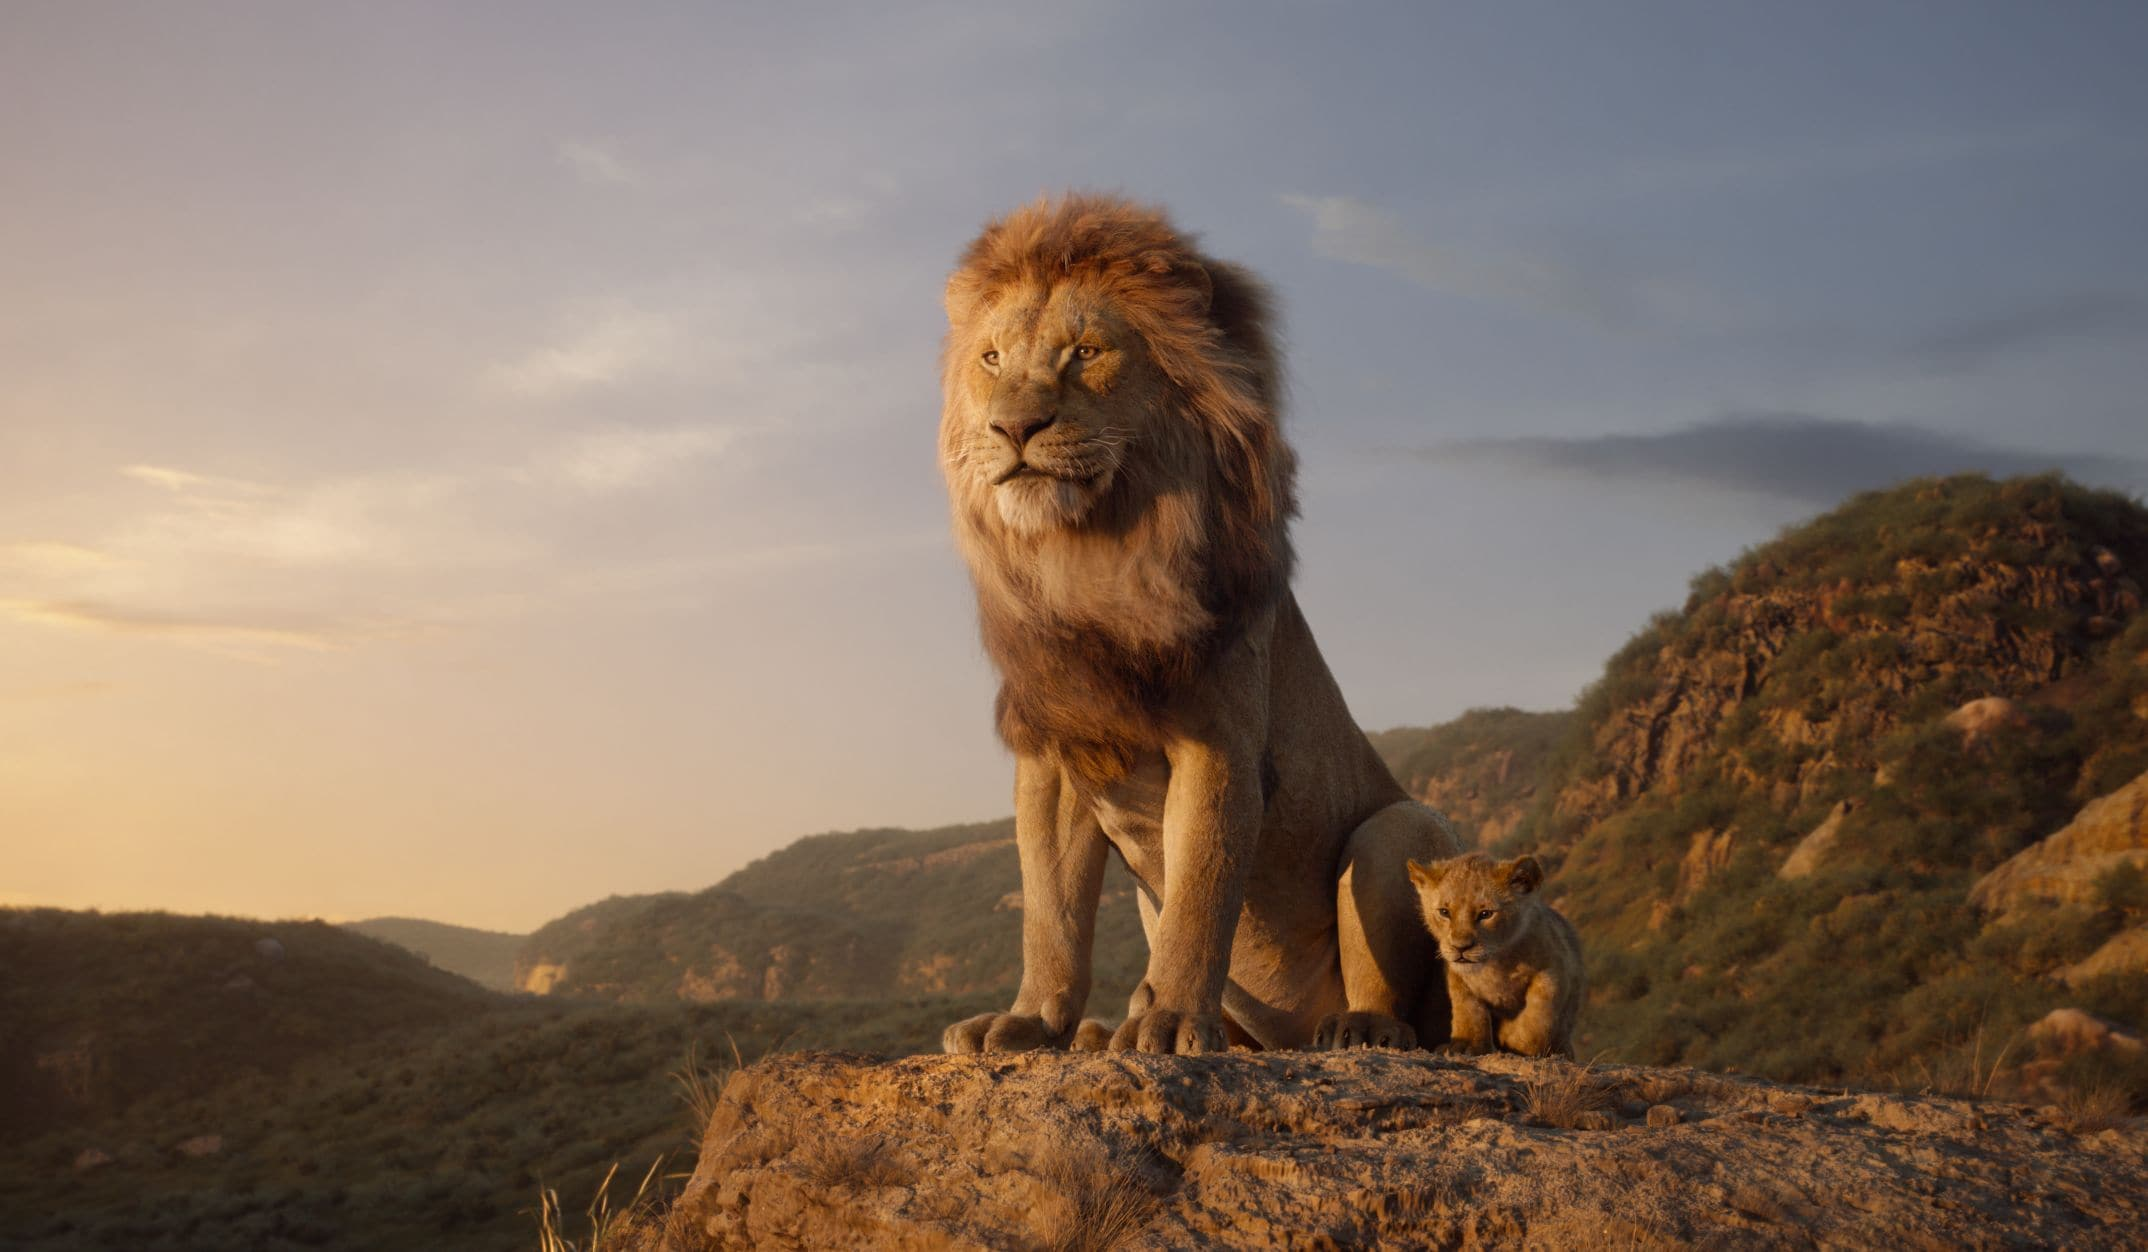 Movie review: The Lion King is a visually stunning makeover that plays it safe